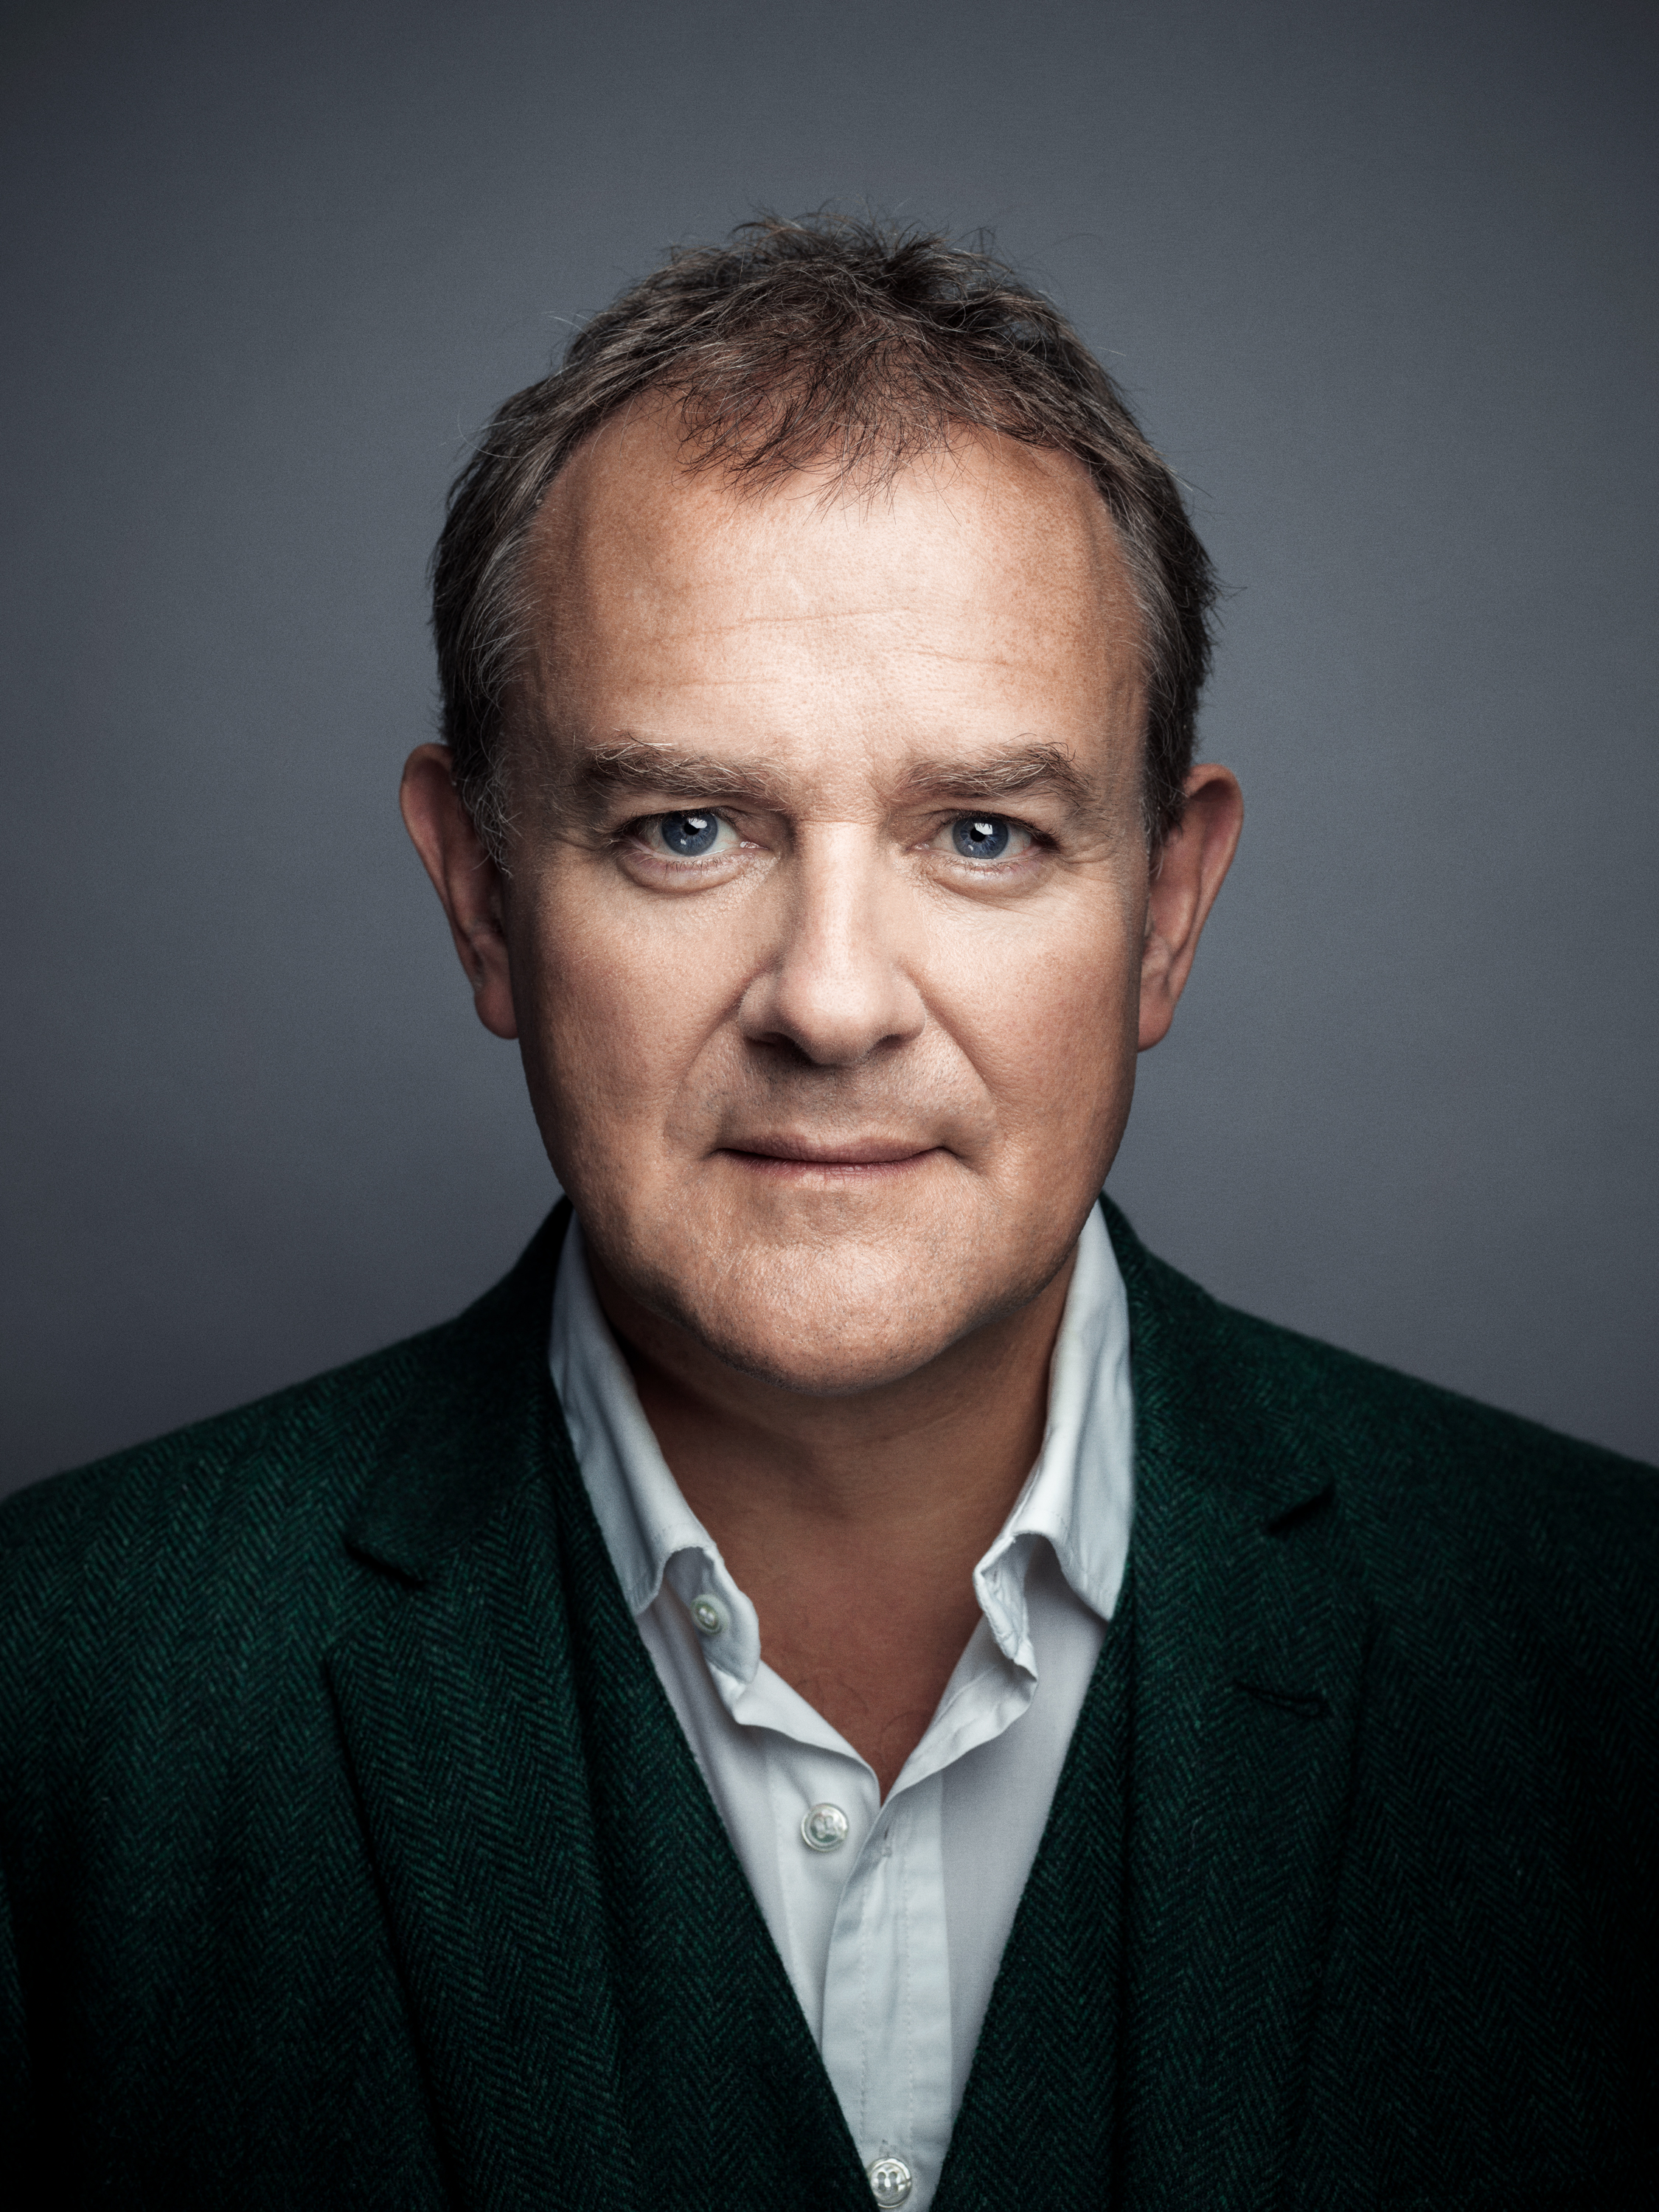 Hugh Bonneville (born 1963)